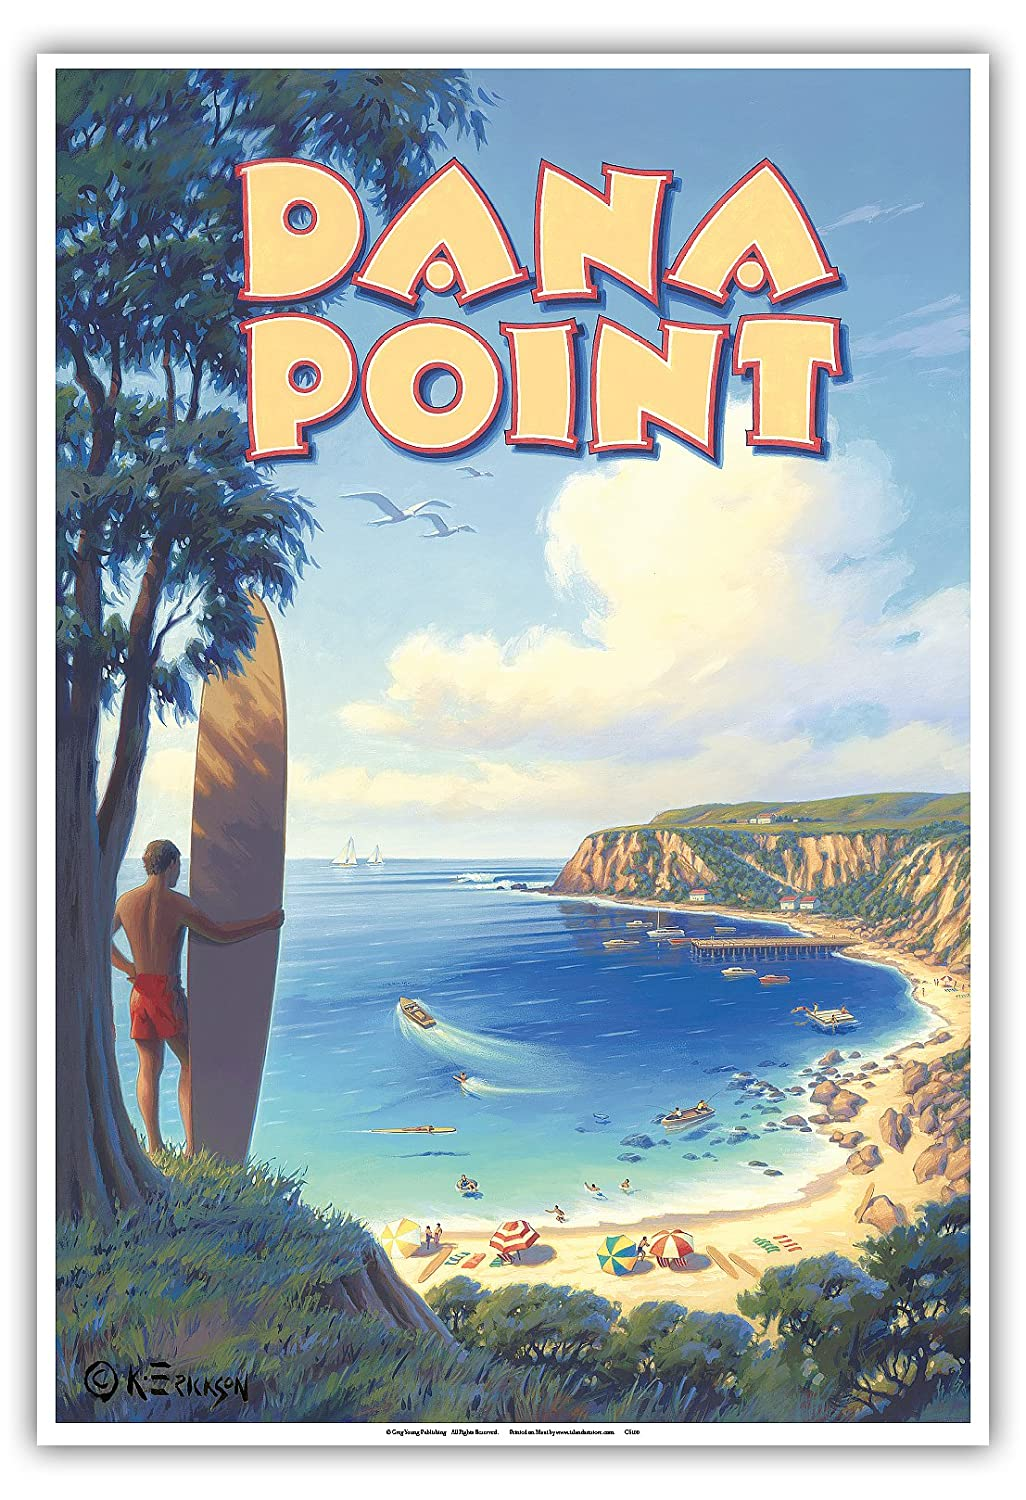 12 x 18in Inc. California Surfing Spot Pacifica Island Art Dana Point Vintage Style World Travel Poster by Kerne Erickson Master Art Print